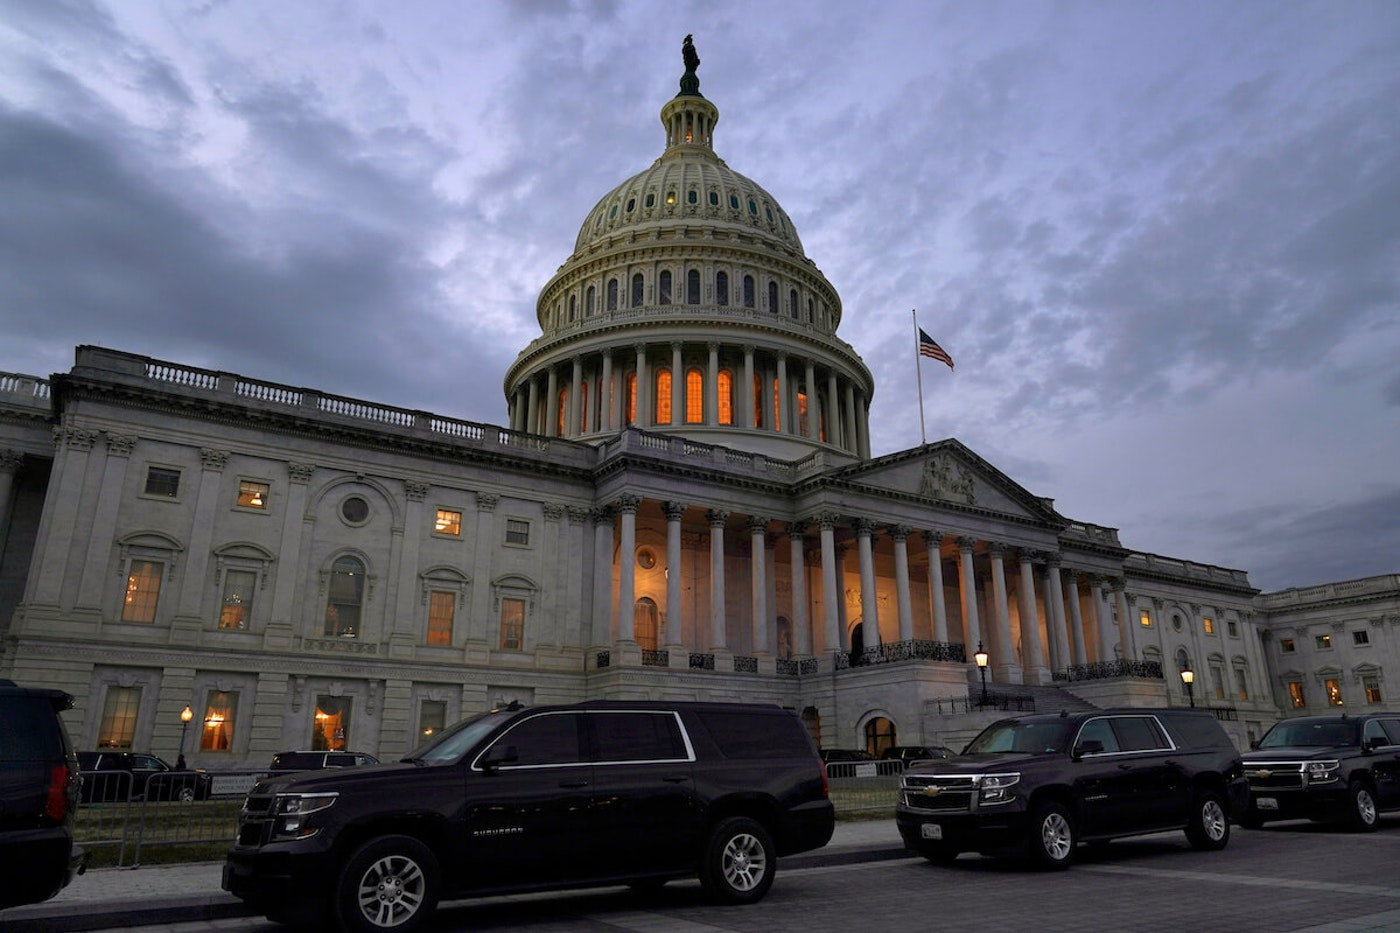 Dusk falls over the Capitol Monday after Congressional leaders have hashed out a massive, year-end catchall bill that combines $900 billion in COVID-19 aid with a $1.4 trillion spending bill and reams of other unfinished legislation on taxes, energy, education and health care. (AP Photo/Jacquelyn Martin)